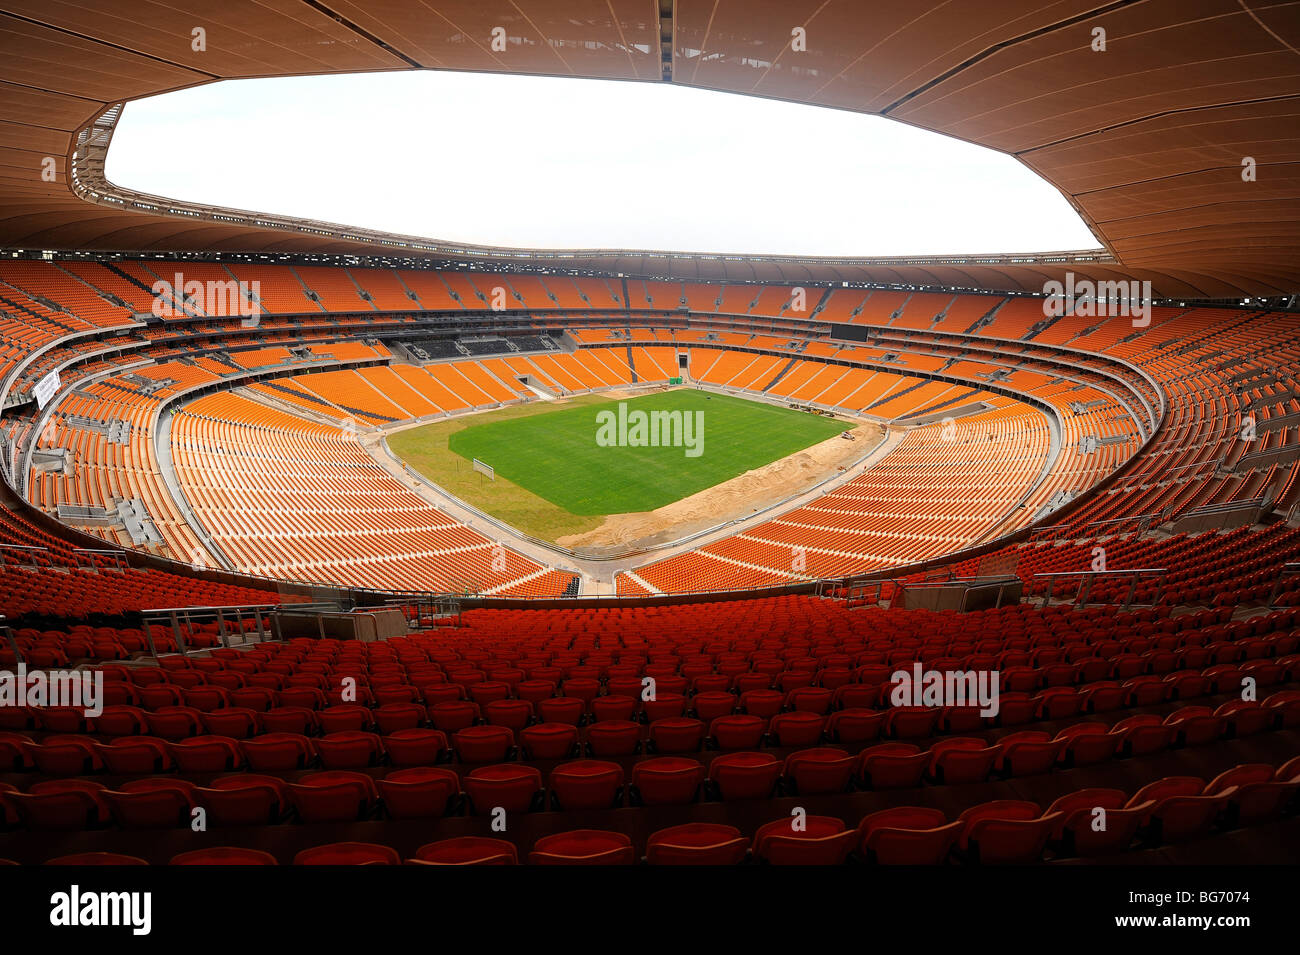 Soccer City Stadium in Johannesburg, South Africa. The host venue for the opening ceremony and FIFA World Cup 2010 - Stock Image